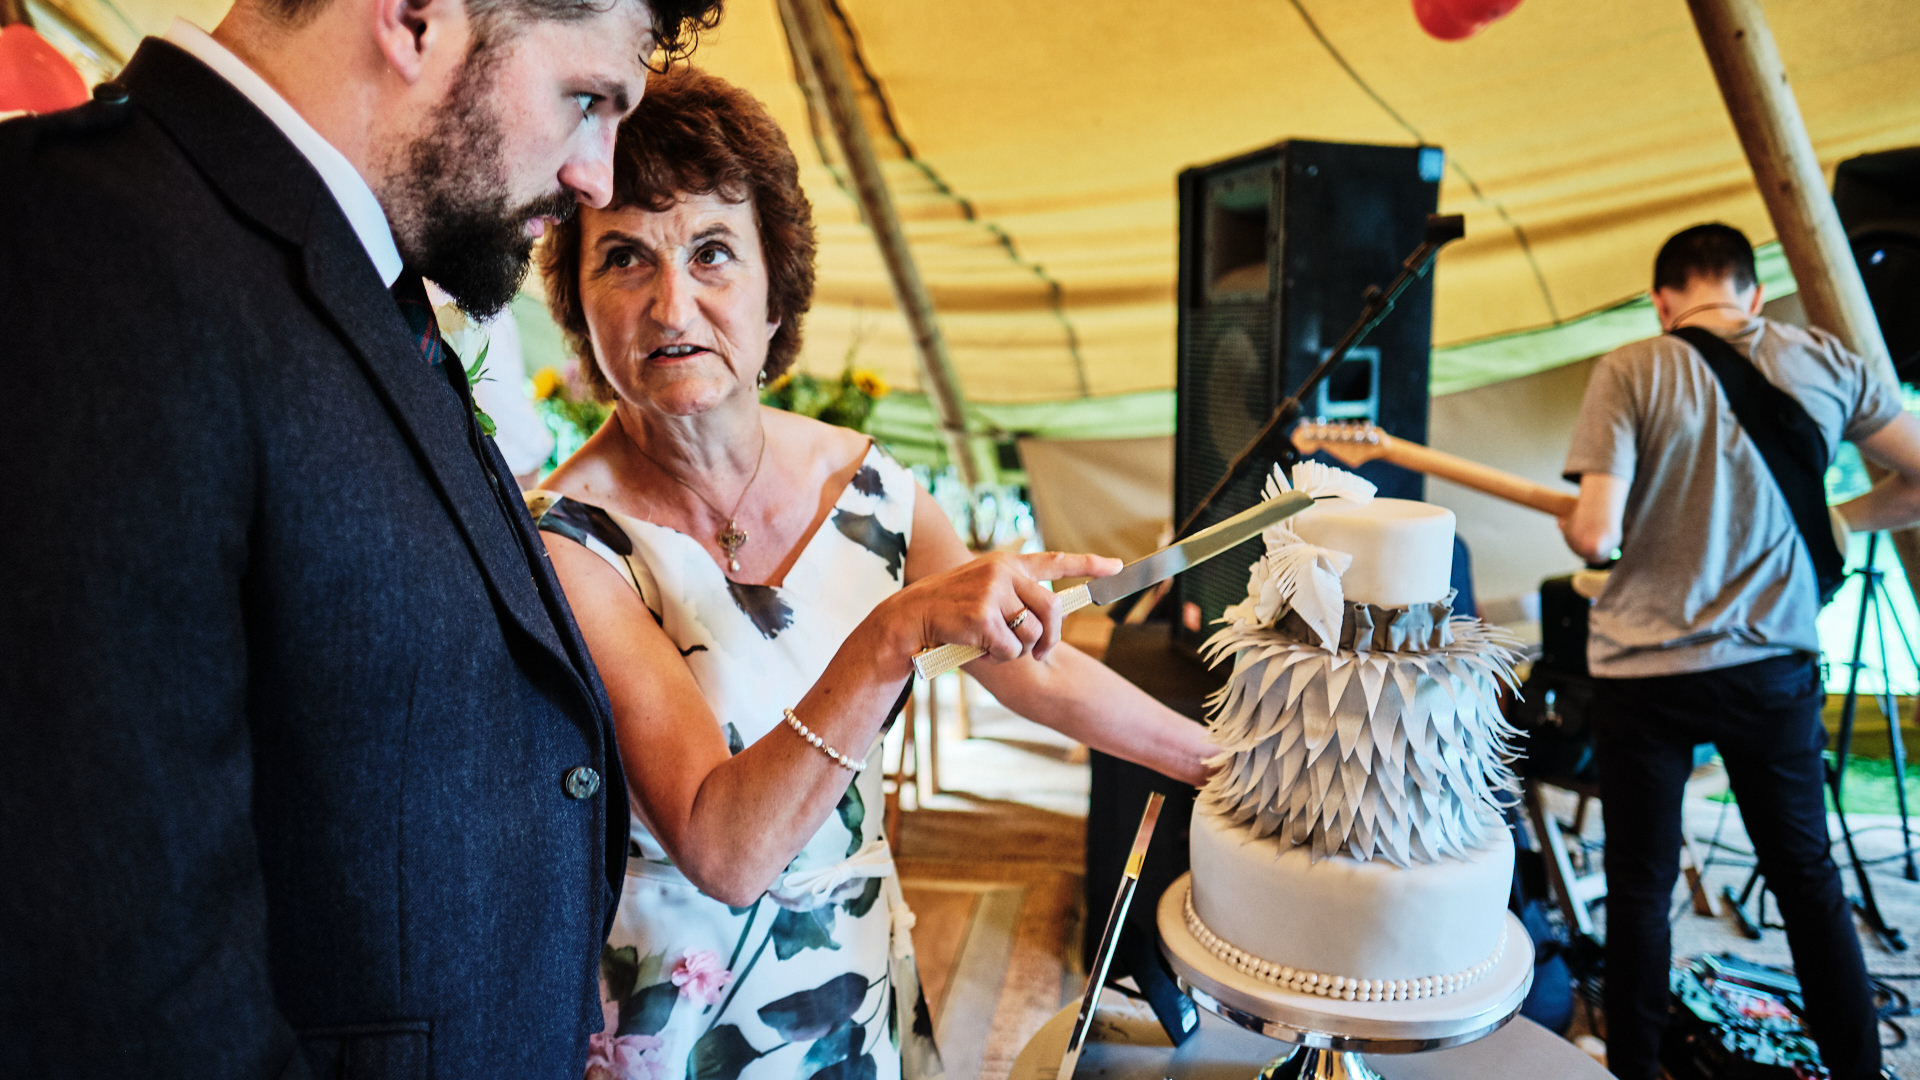 colour photograph of the bride groom and his mum arranging the wedding cake just before the official cake cutting at his wedding